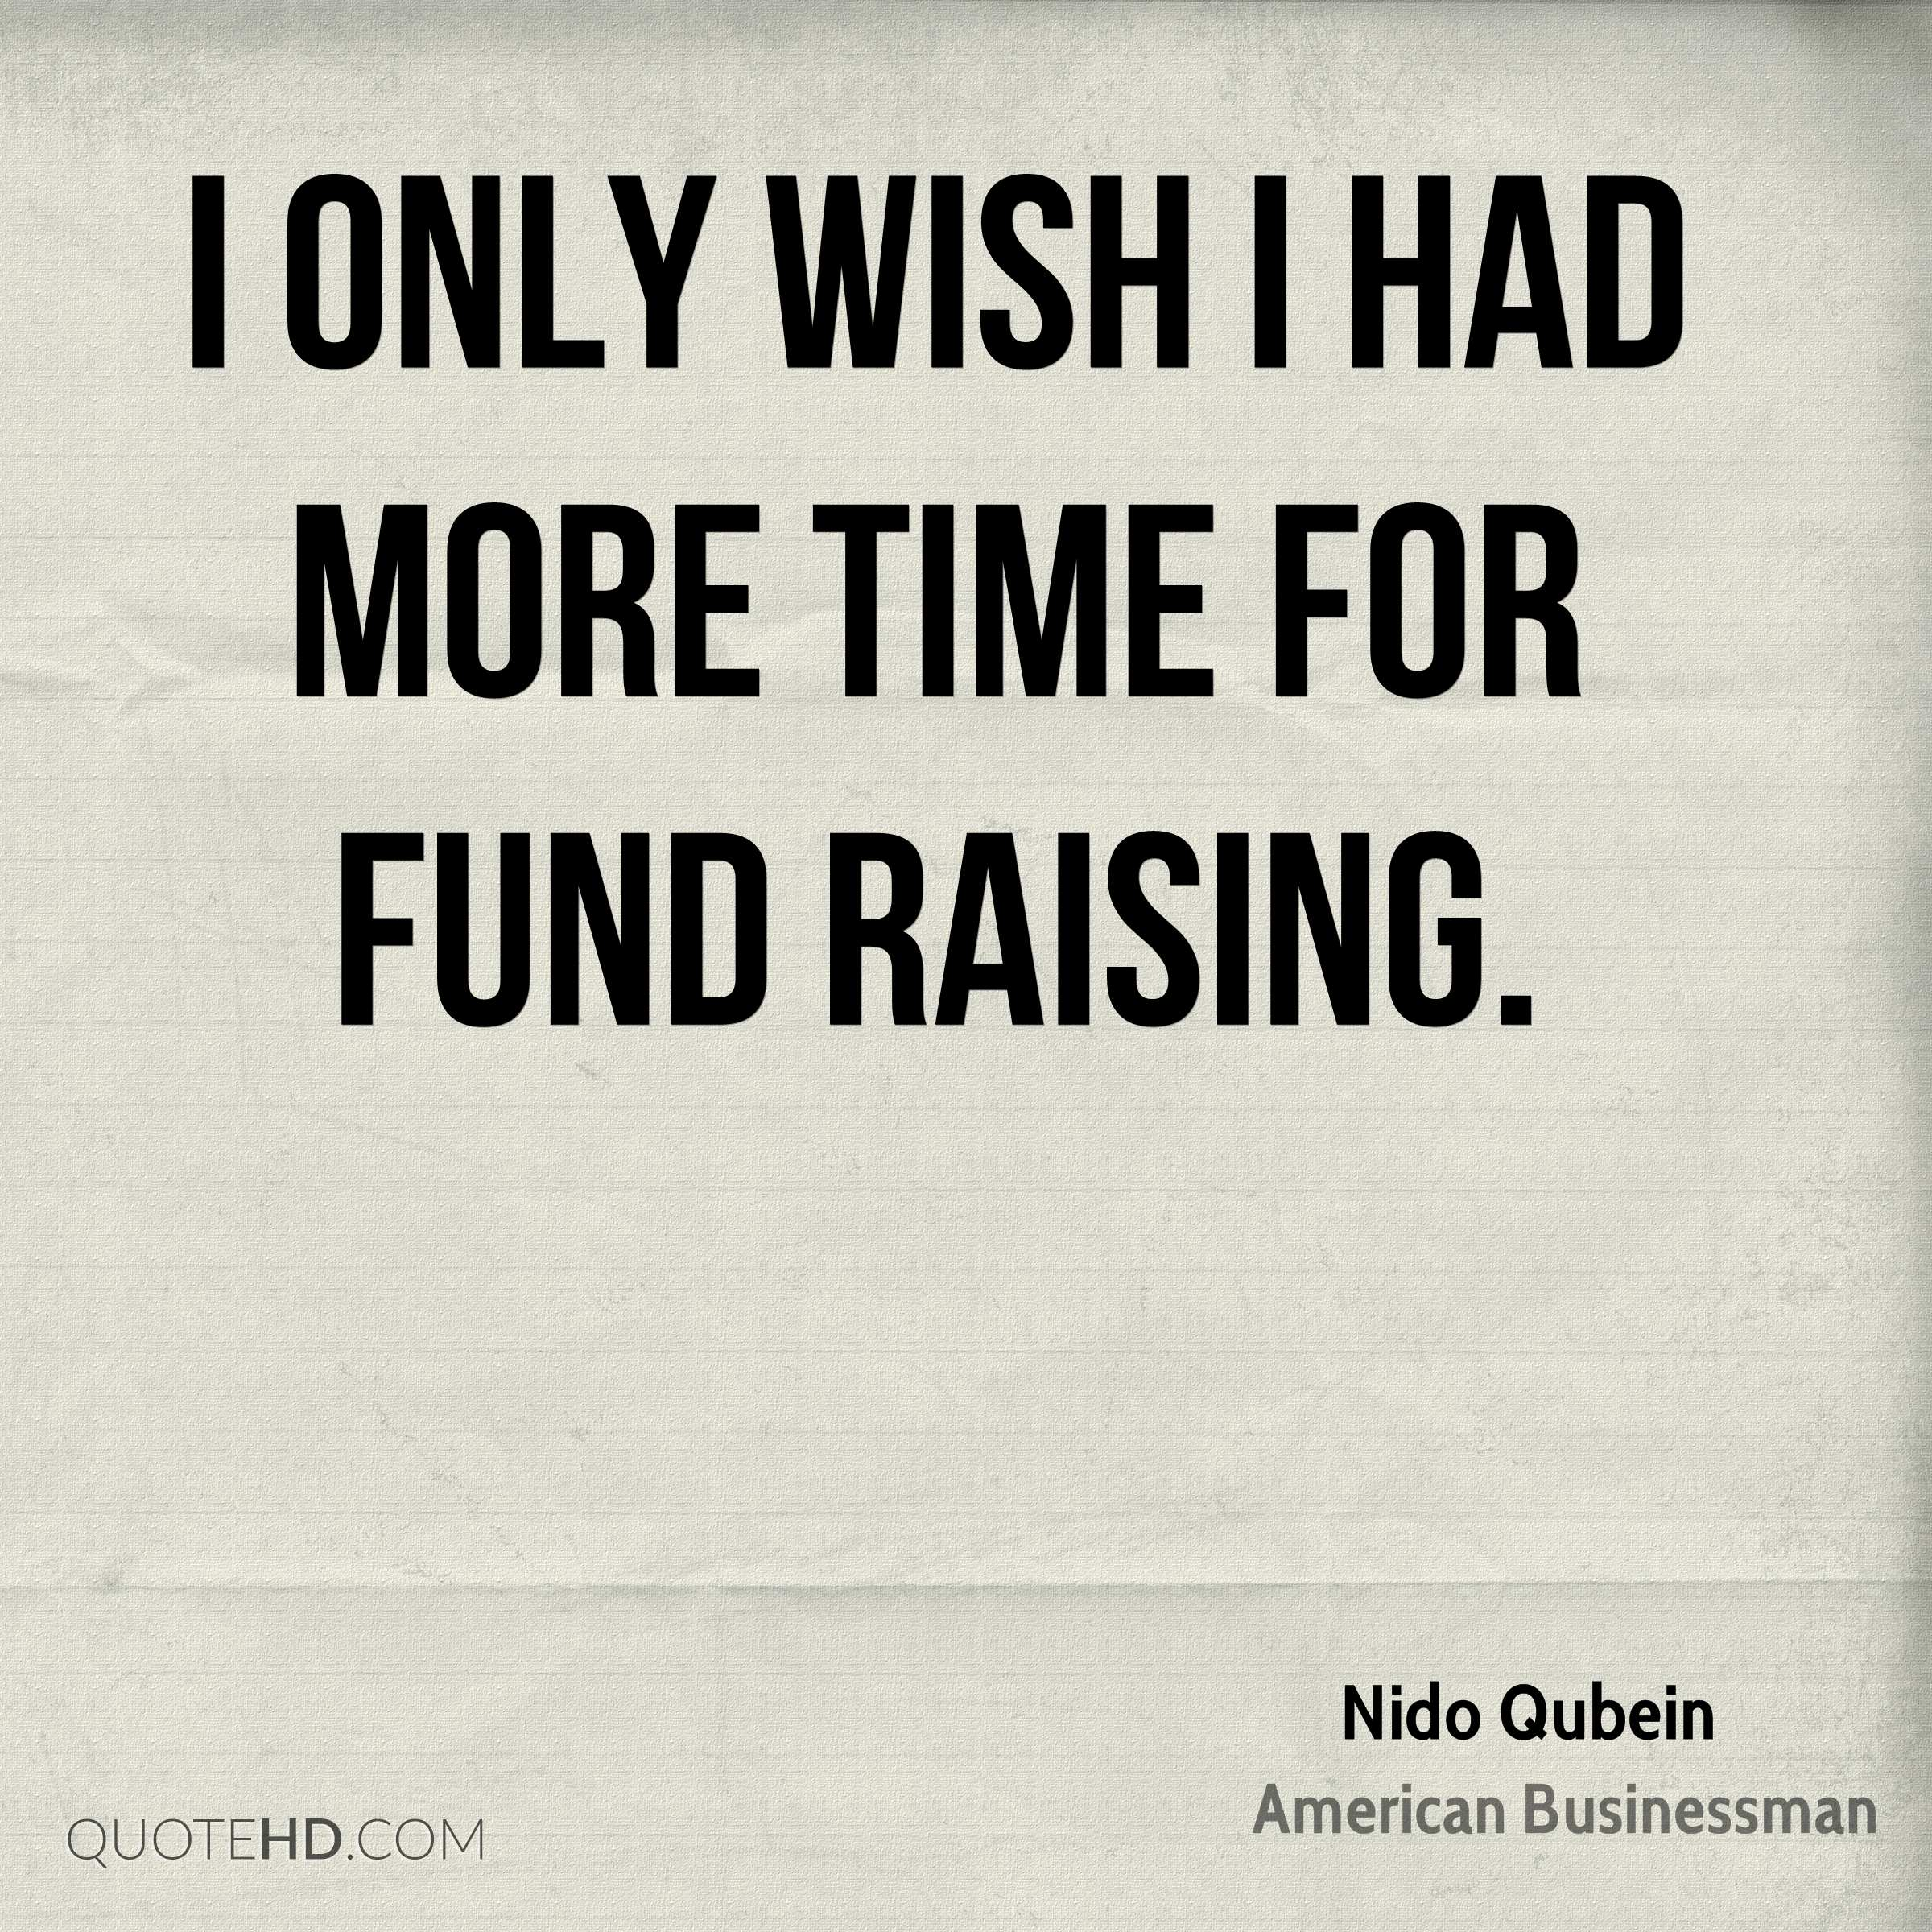 I only wish I had more time for fund raising.